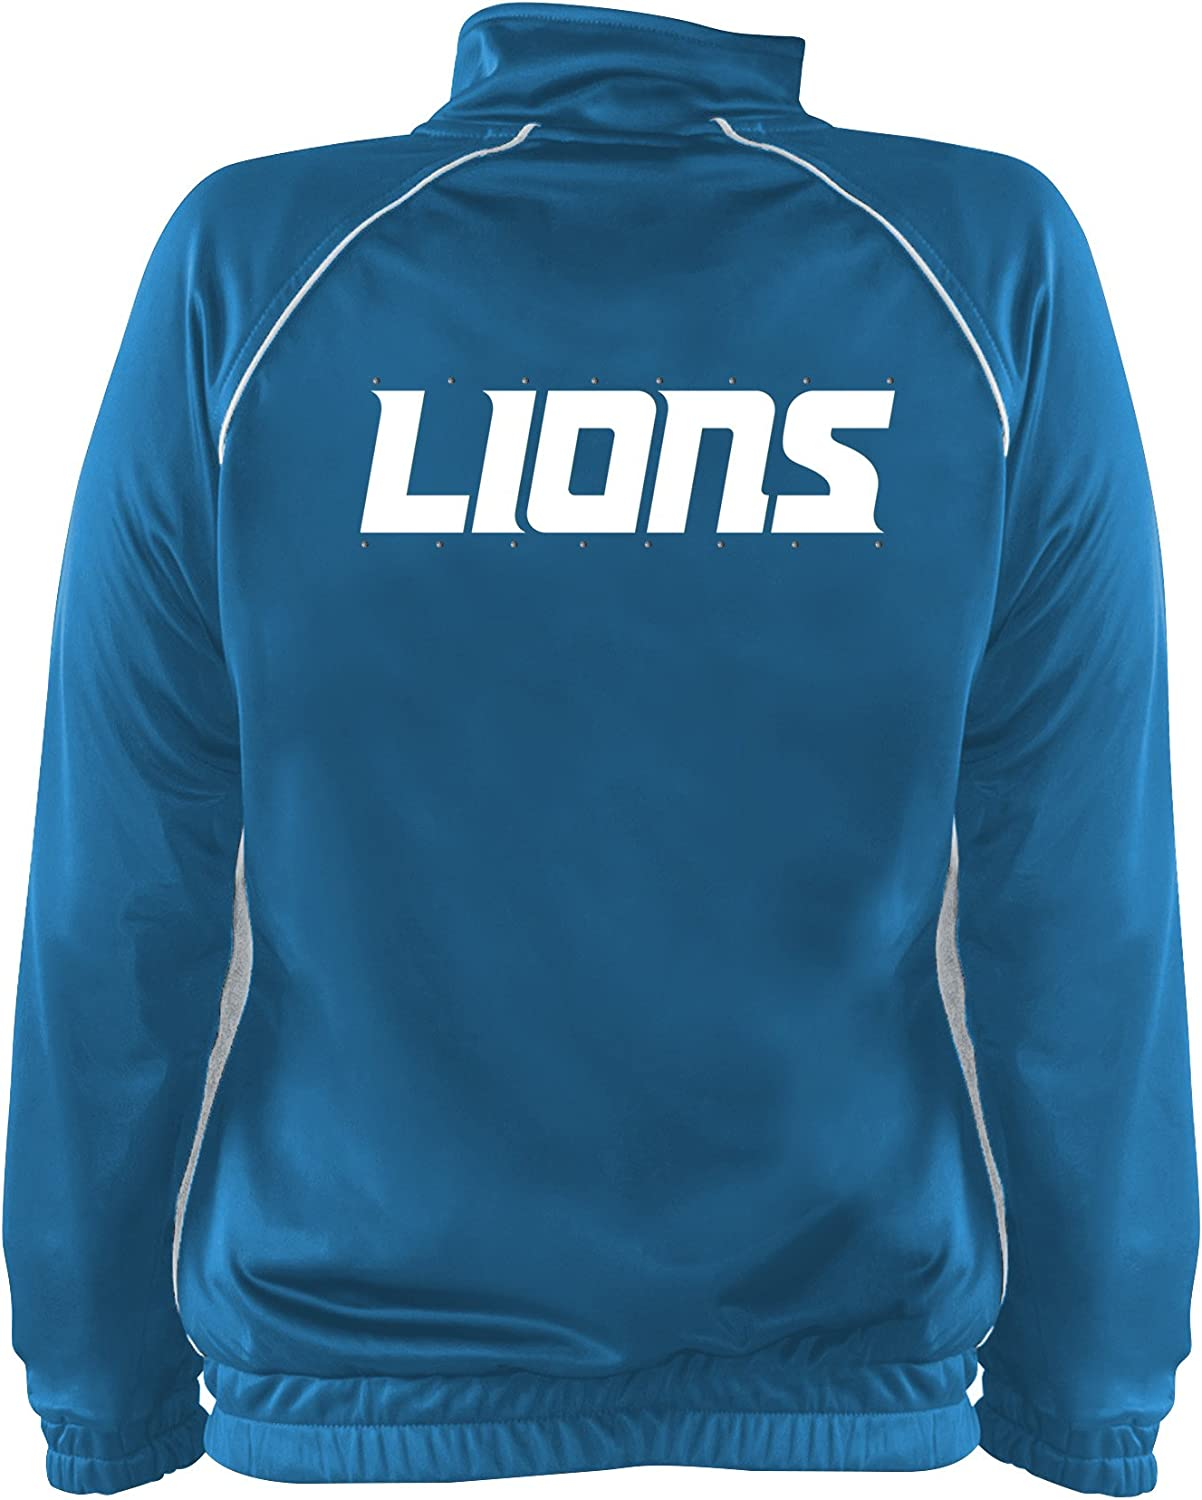 NFL Team Apparel NFL Womens Lions Poly Tricot Track Jacket